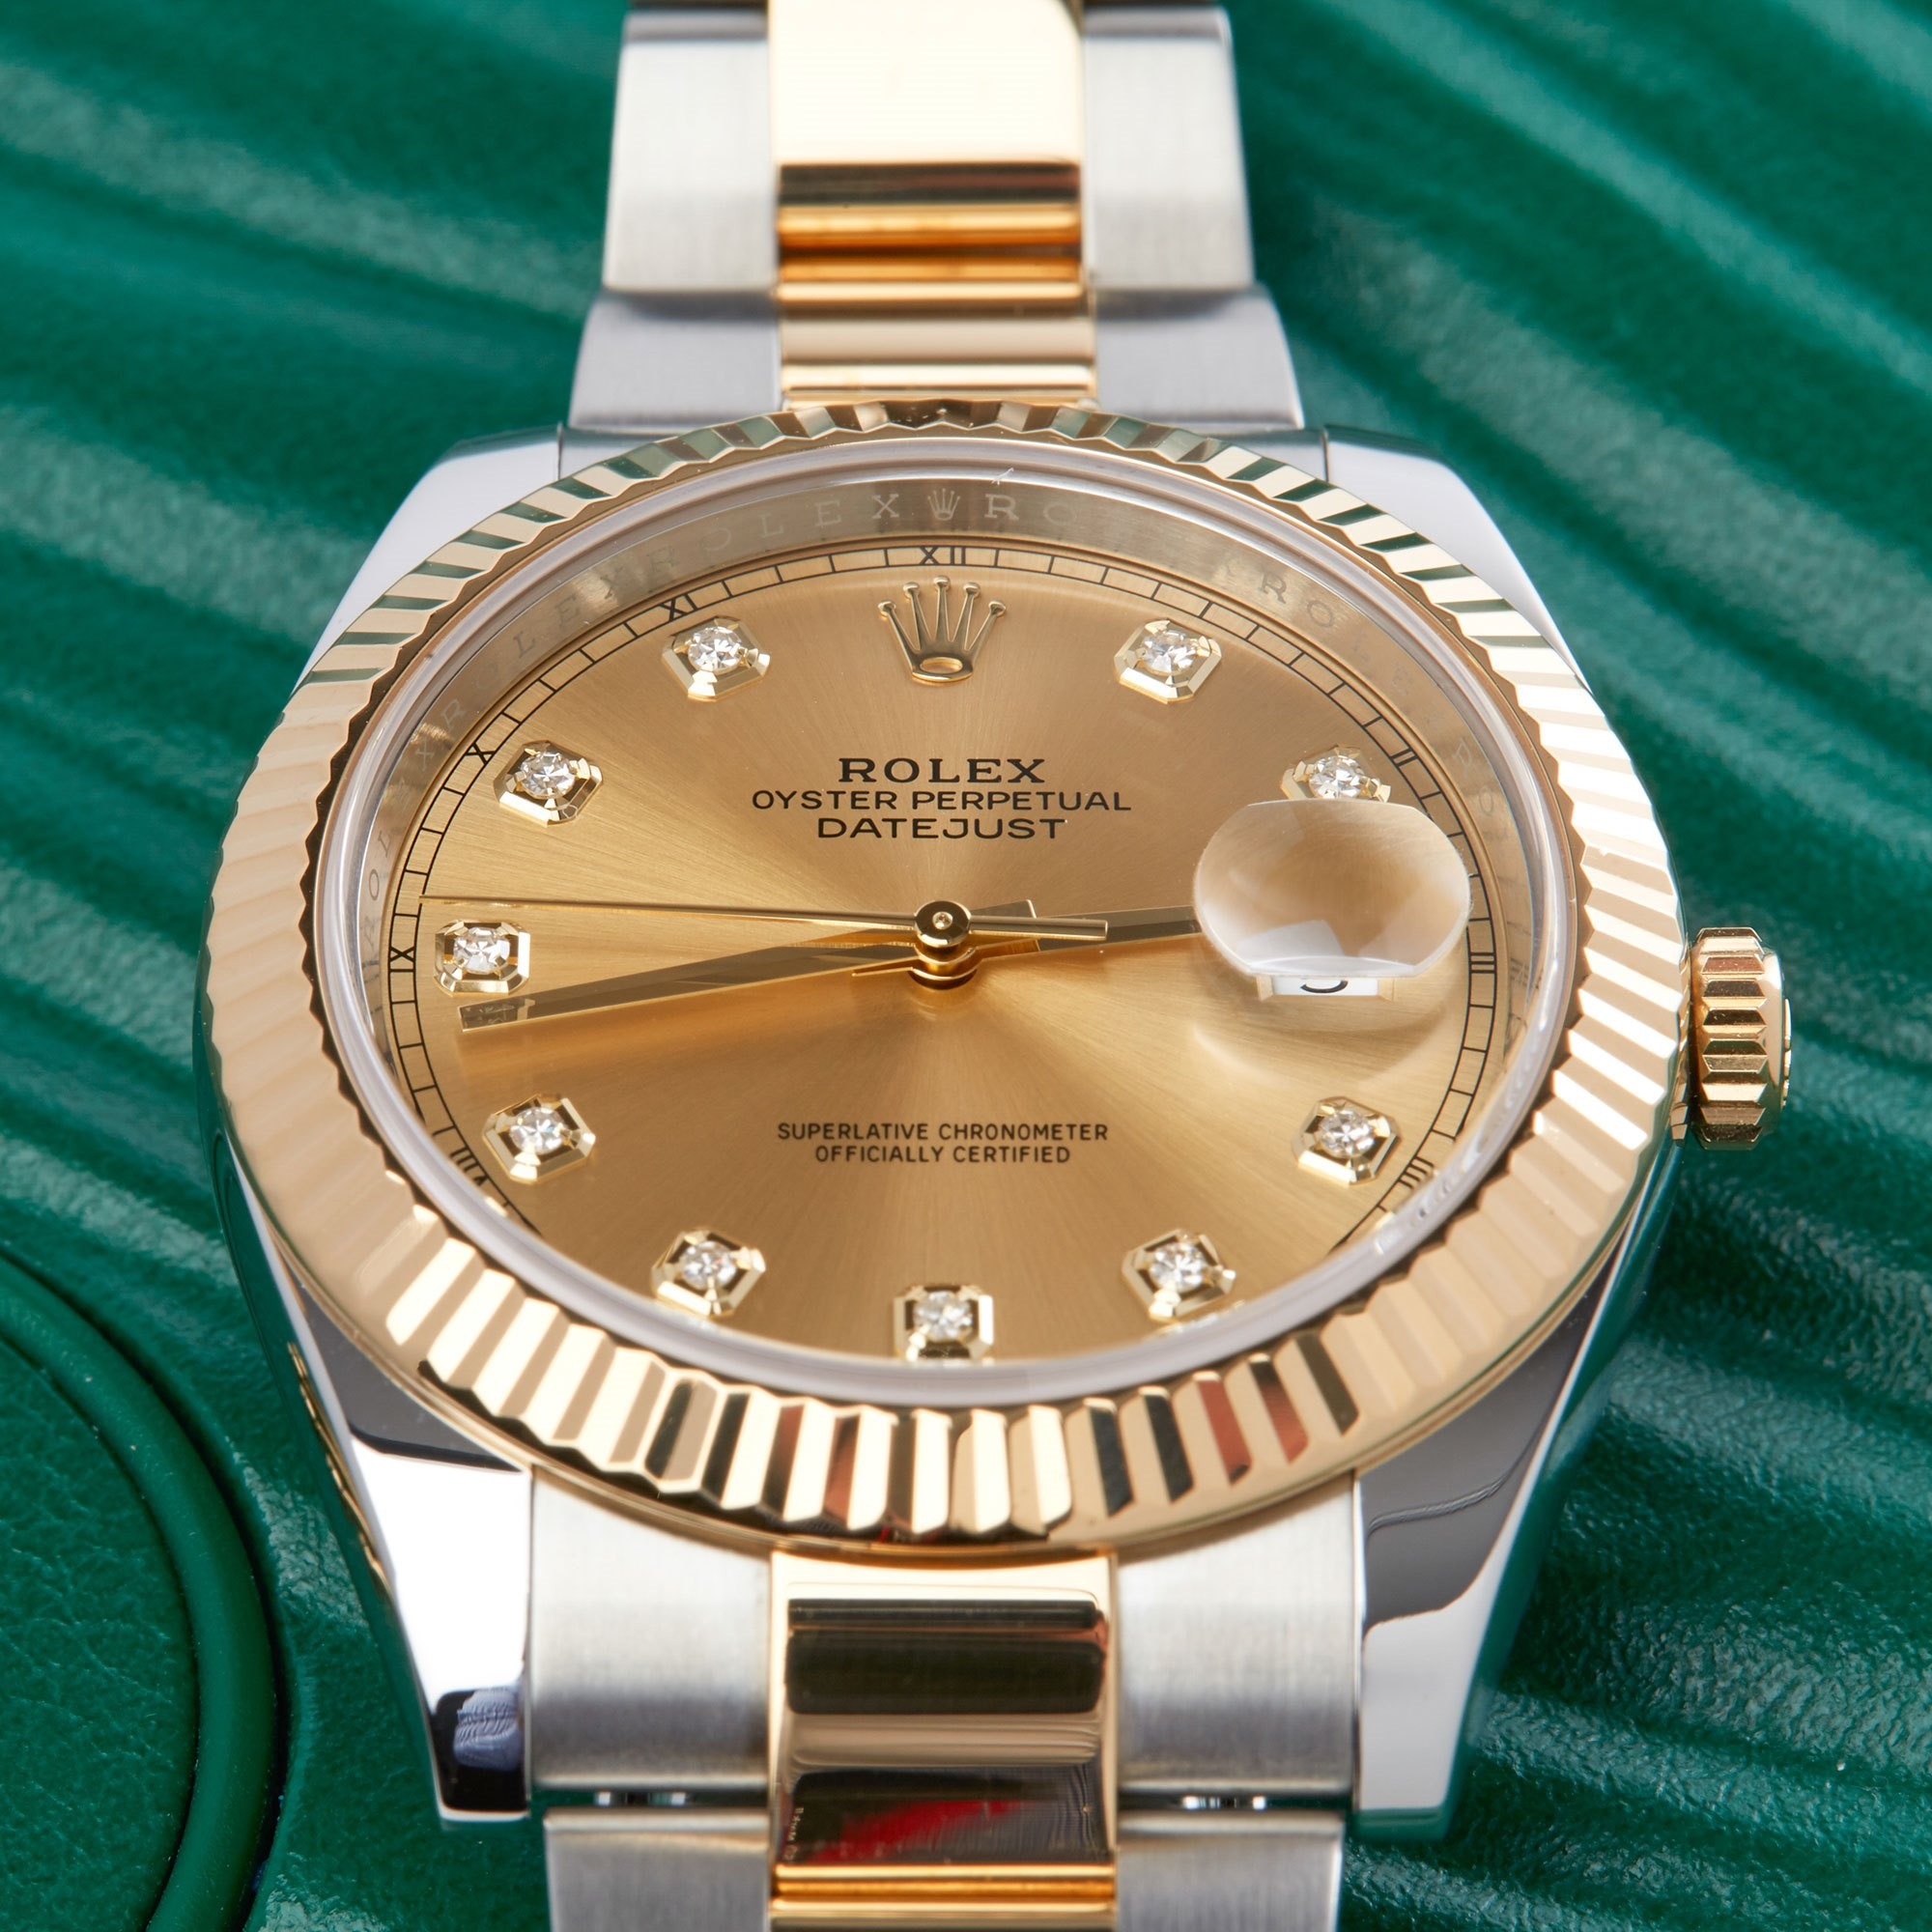 Rolex Datejust 41 126333 Men Yellow Gold & Stainless Steel Diamond Watch - Image 7 of 10